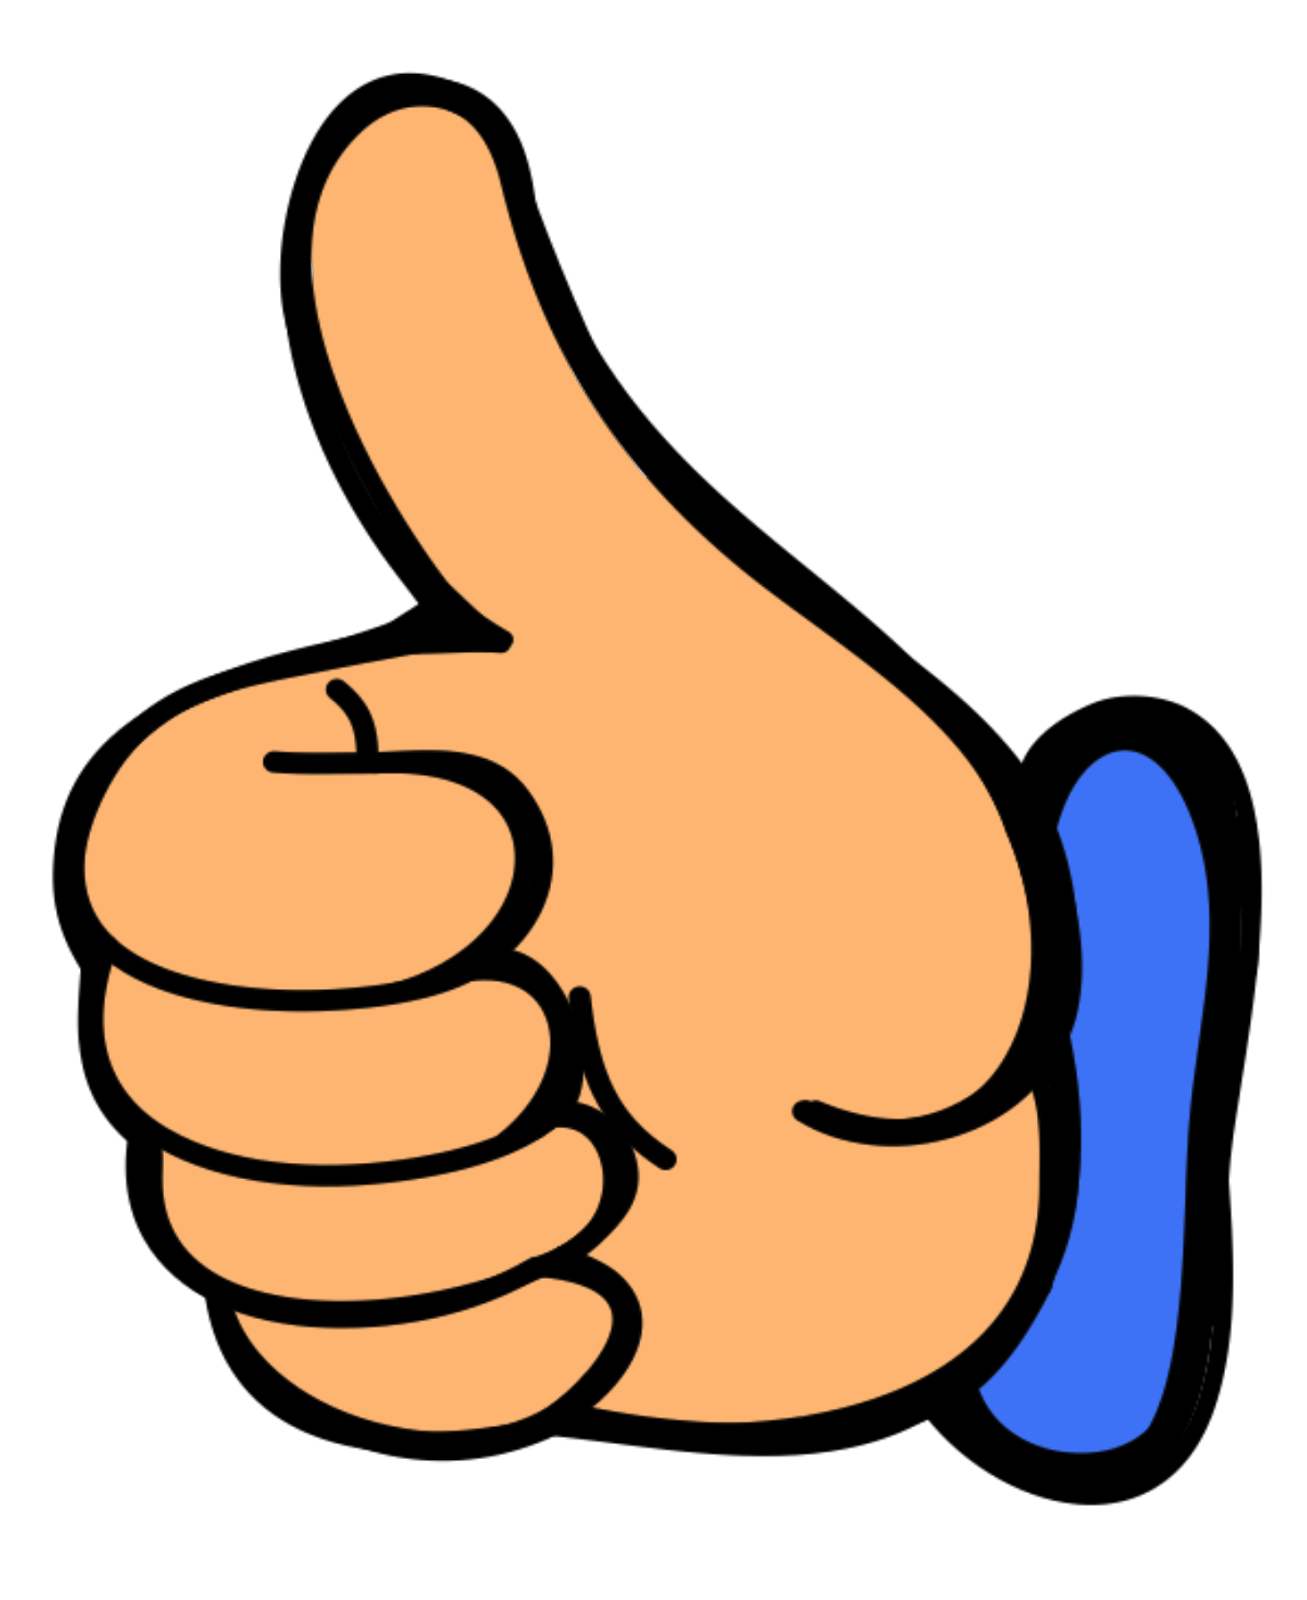 thumbs up clipart right hand